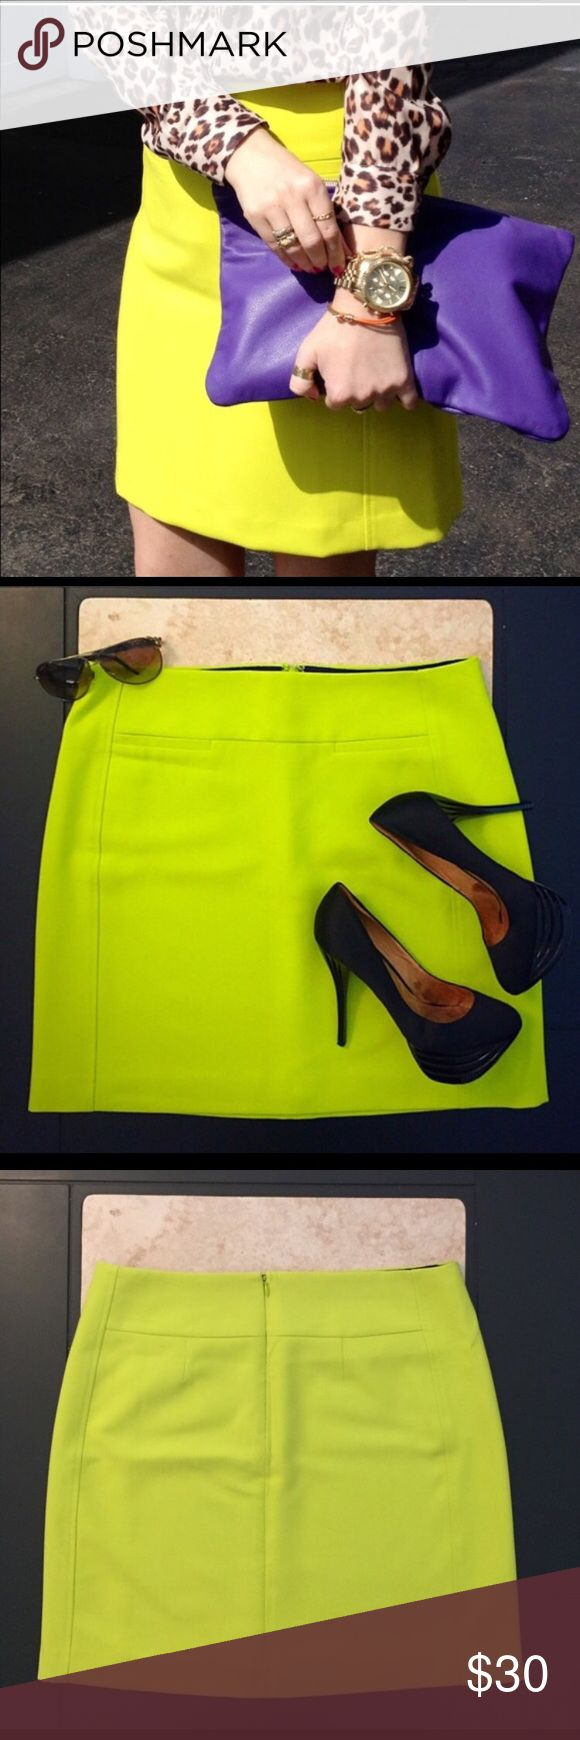 Loft neon yellow pencil skirt size 12 Adorable BNWOT Loft neon yellow pencil skirt. This would be adorable dressed up or down! The length is 19 inches. It has a structured feel, two front faux pockets, is lined, and has a hidden zipper in the back. Perfect for the season! ❤️ LOFT Skirts Midi